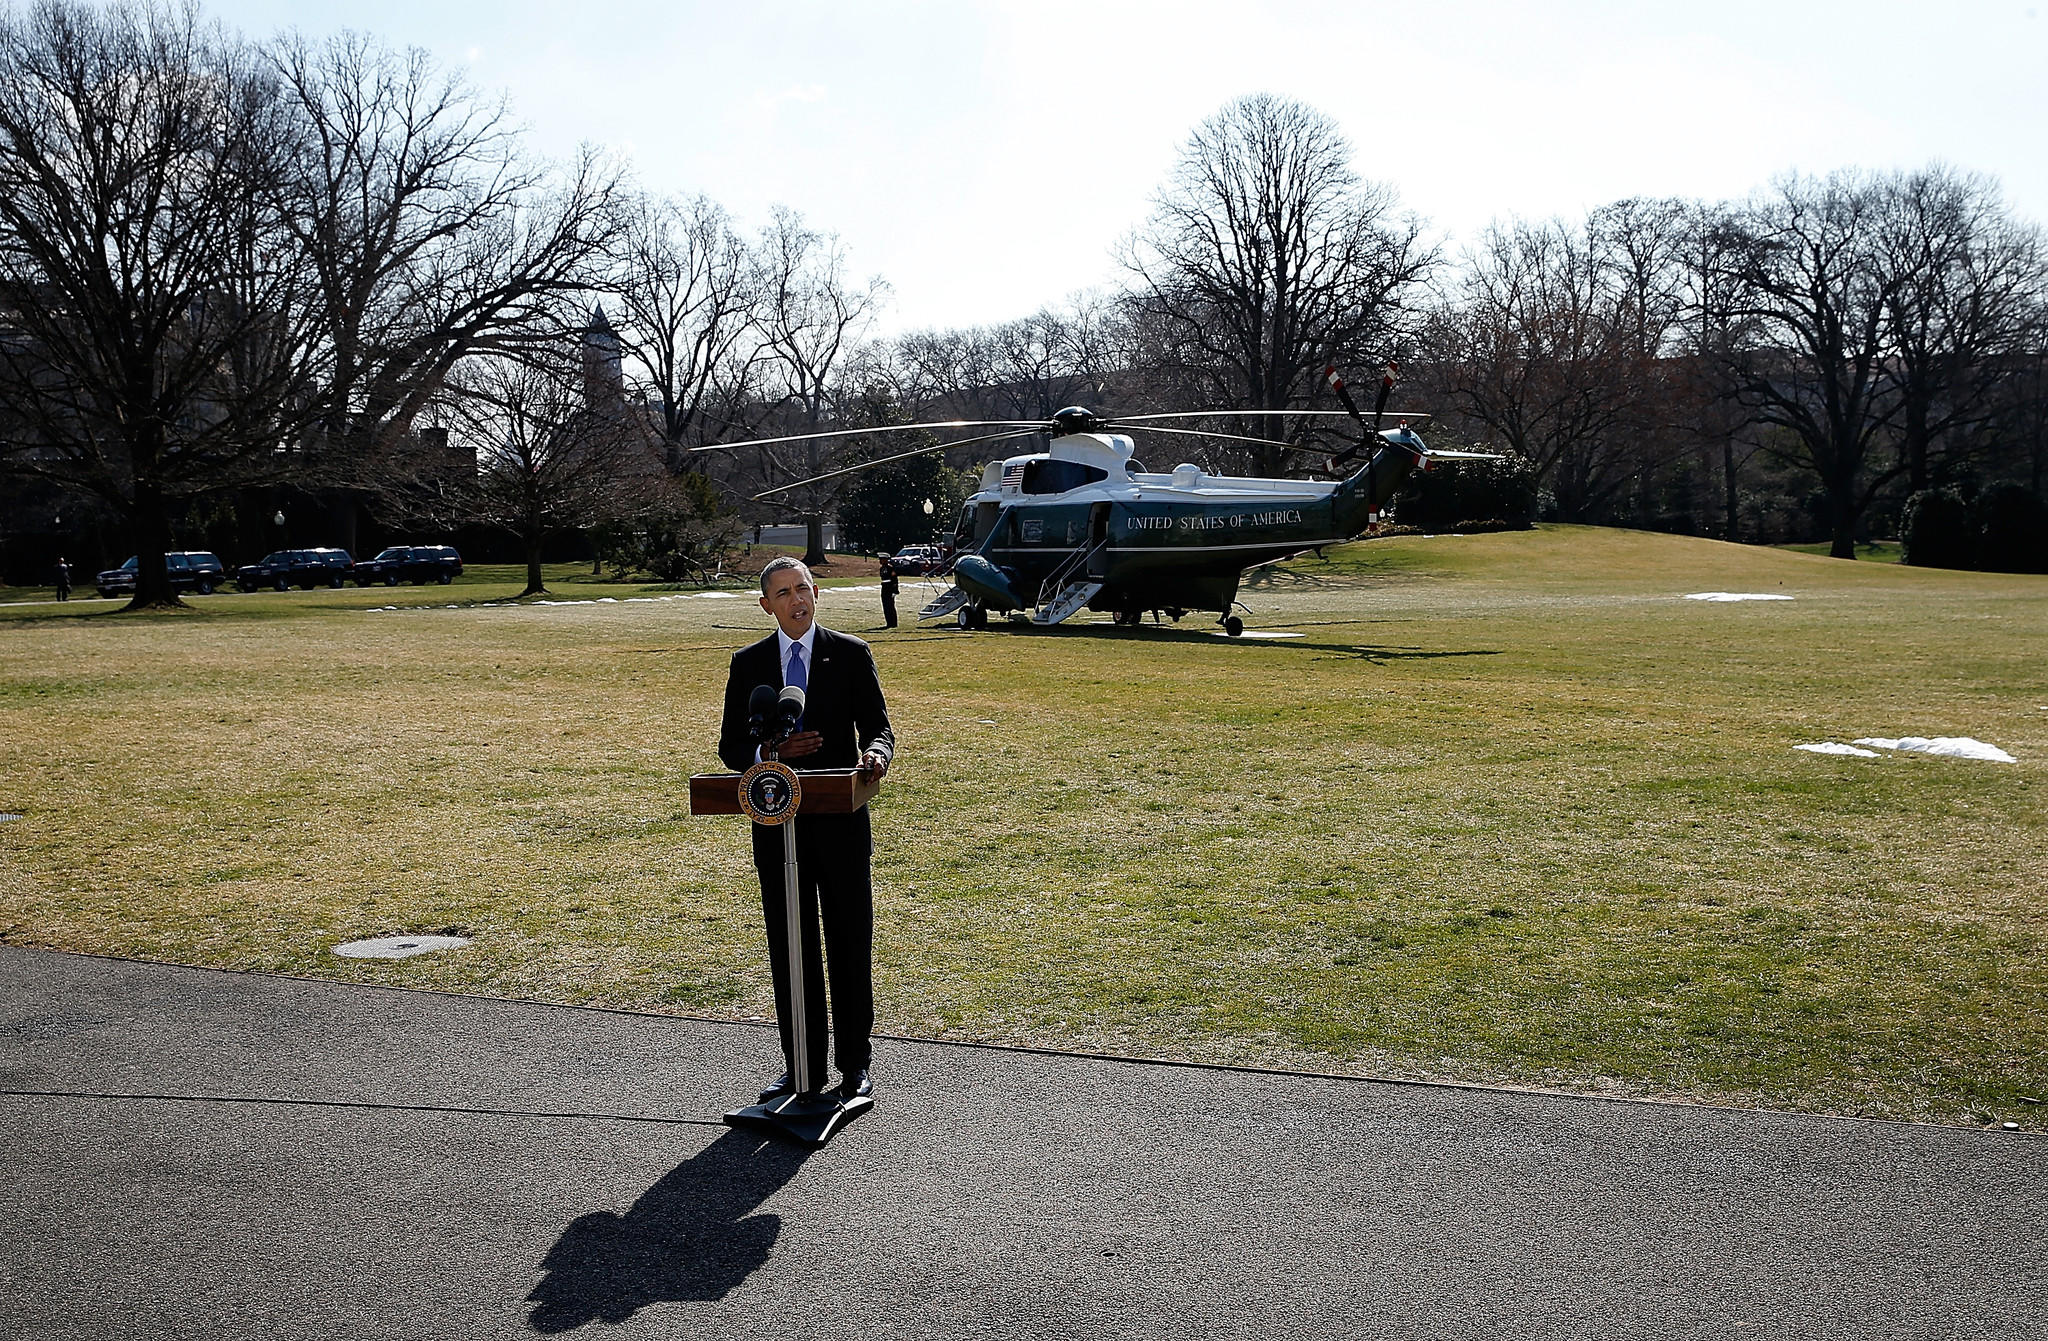 President Barack Obama speaks on the South Lawn of the White House to deliver a statement on Ukraine prior to departing for Florida.